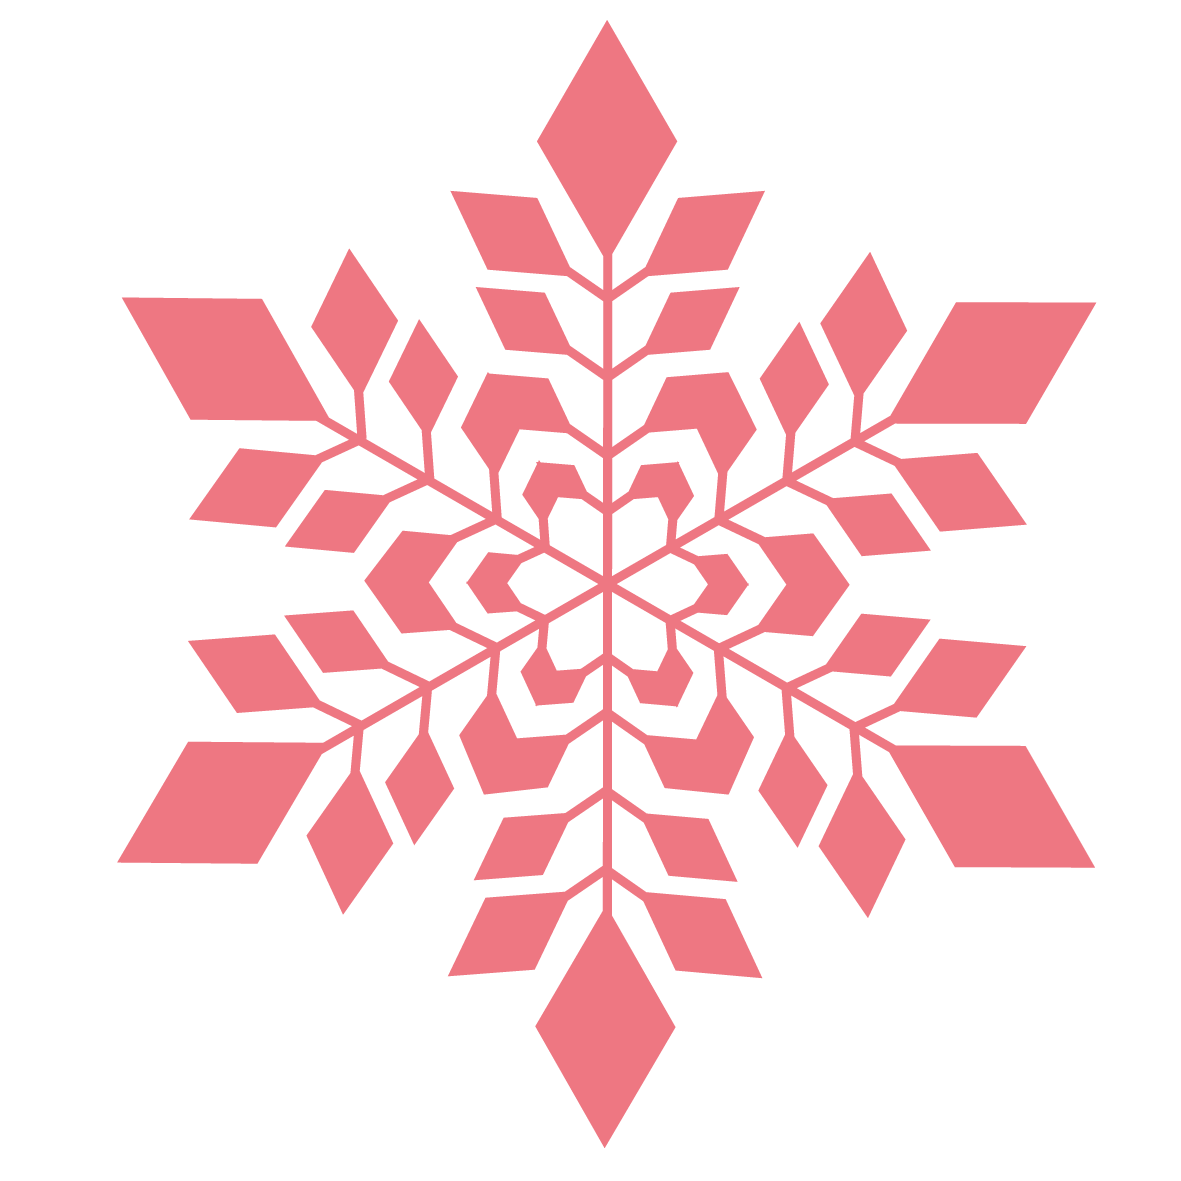 snowflakes png red